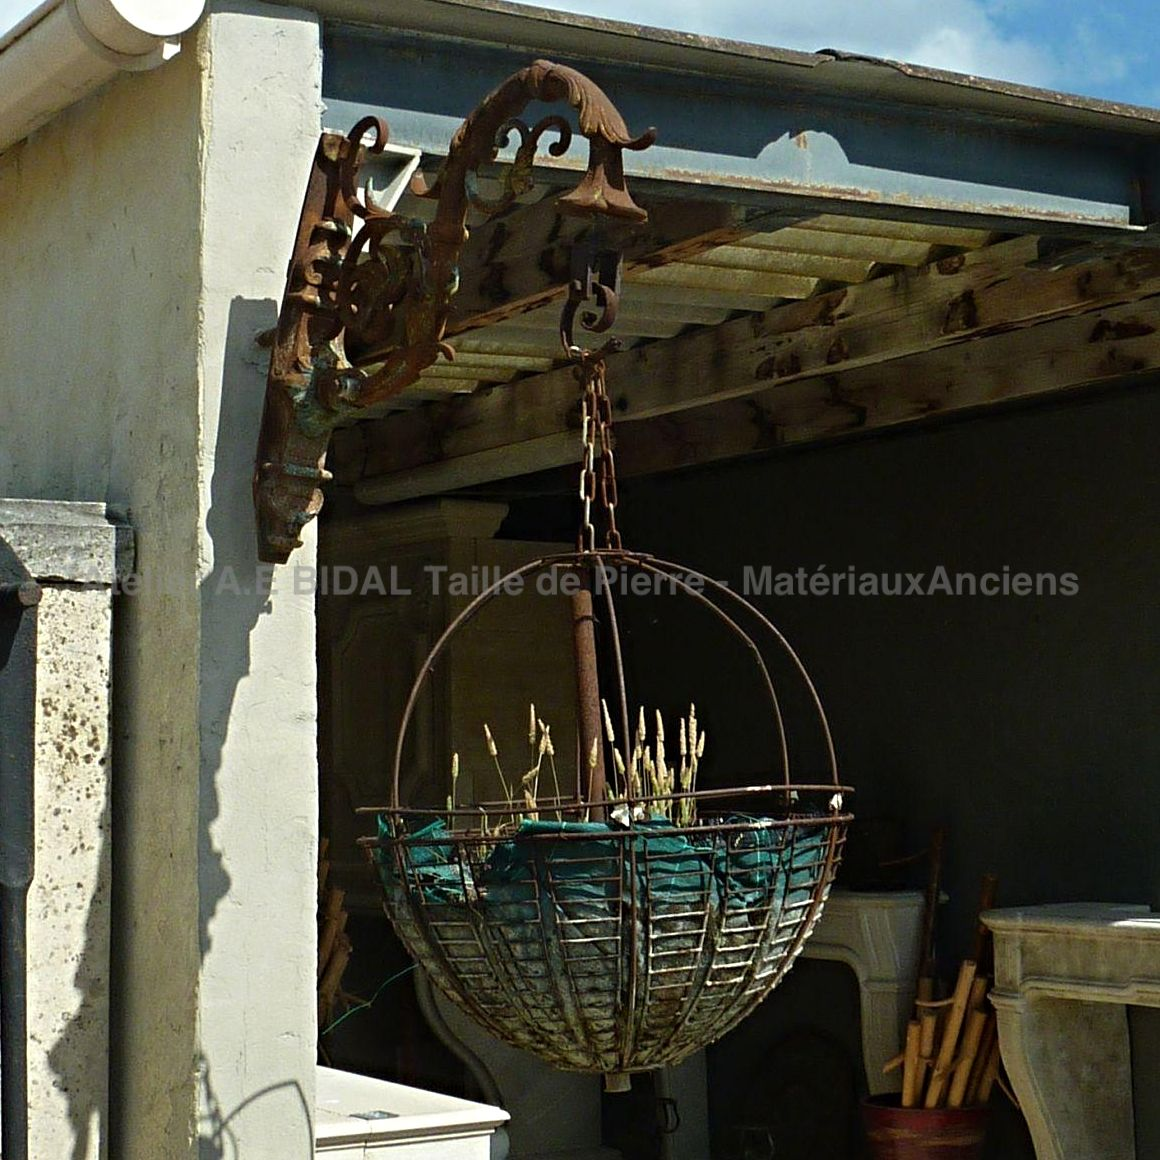 Wrought iron planter - decorative objects made of old materials.